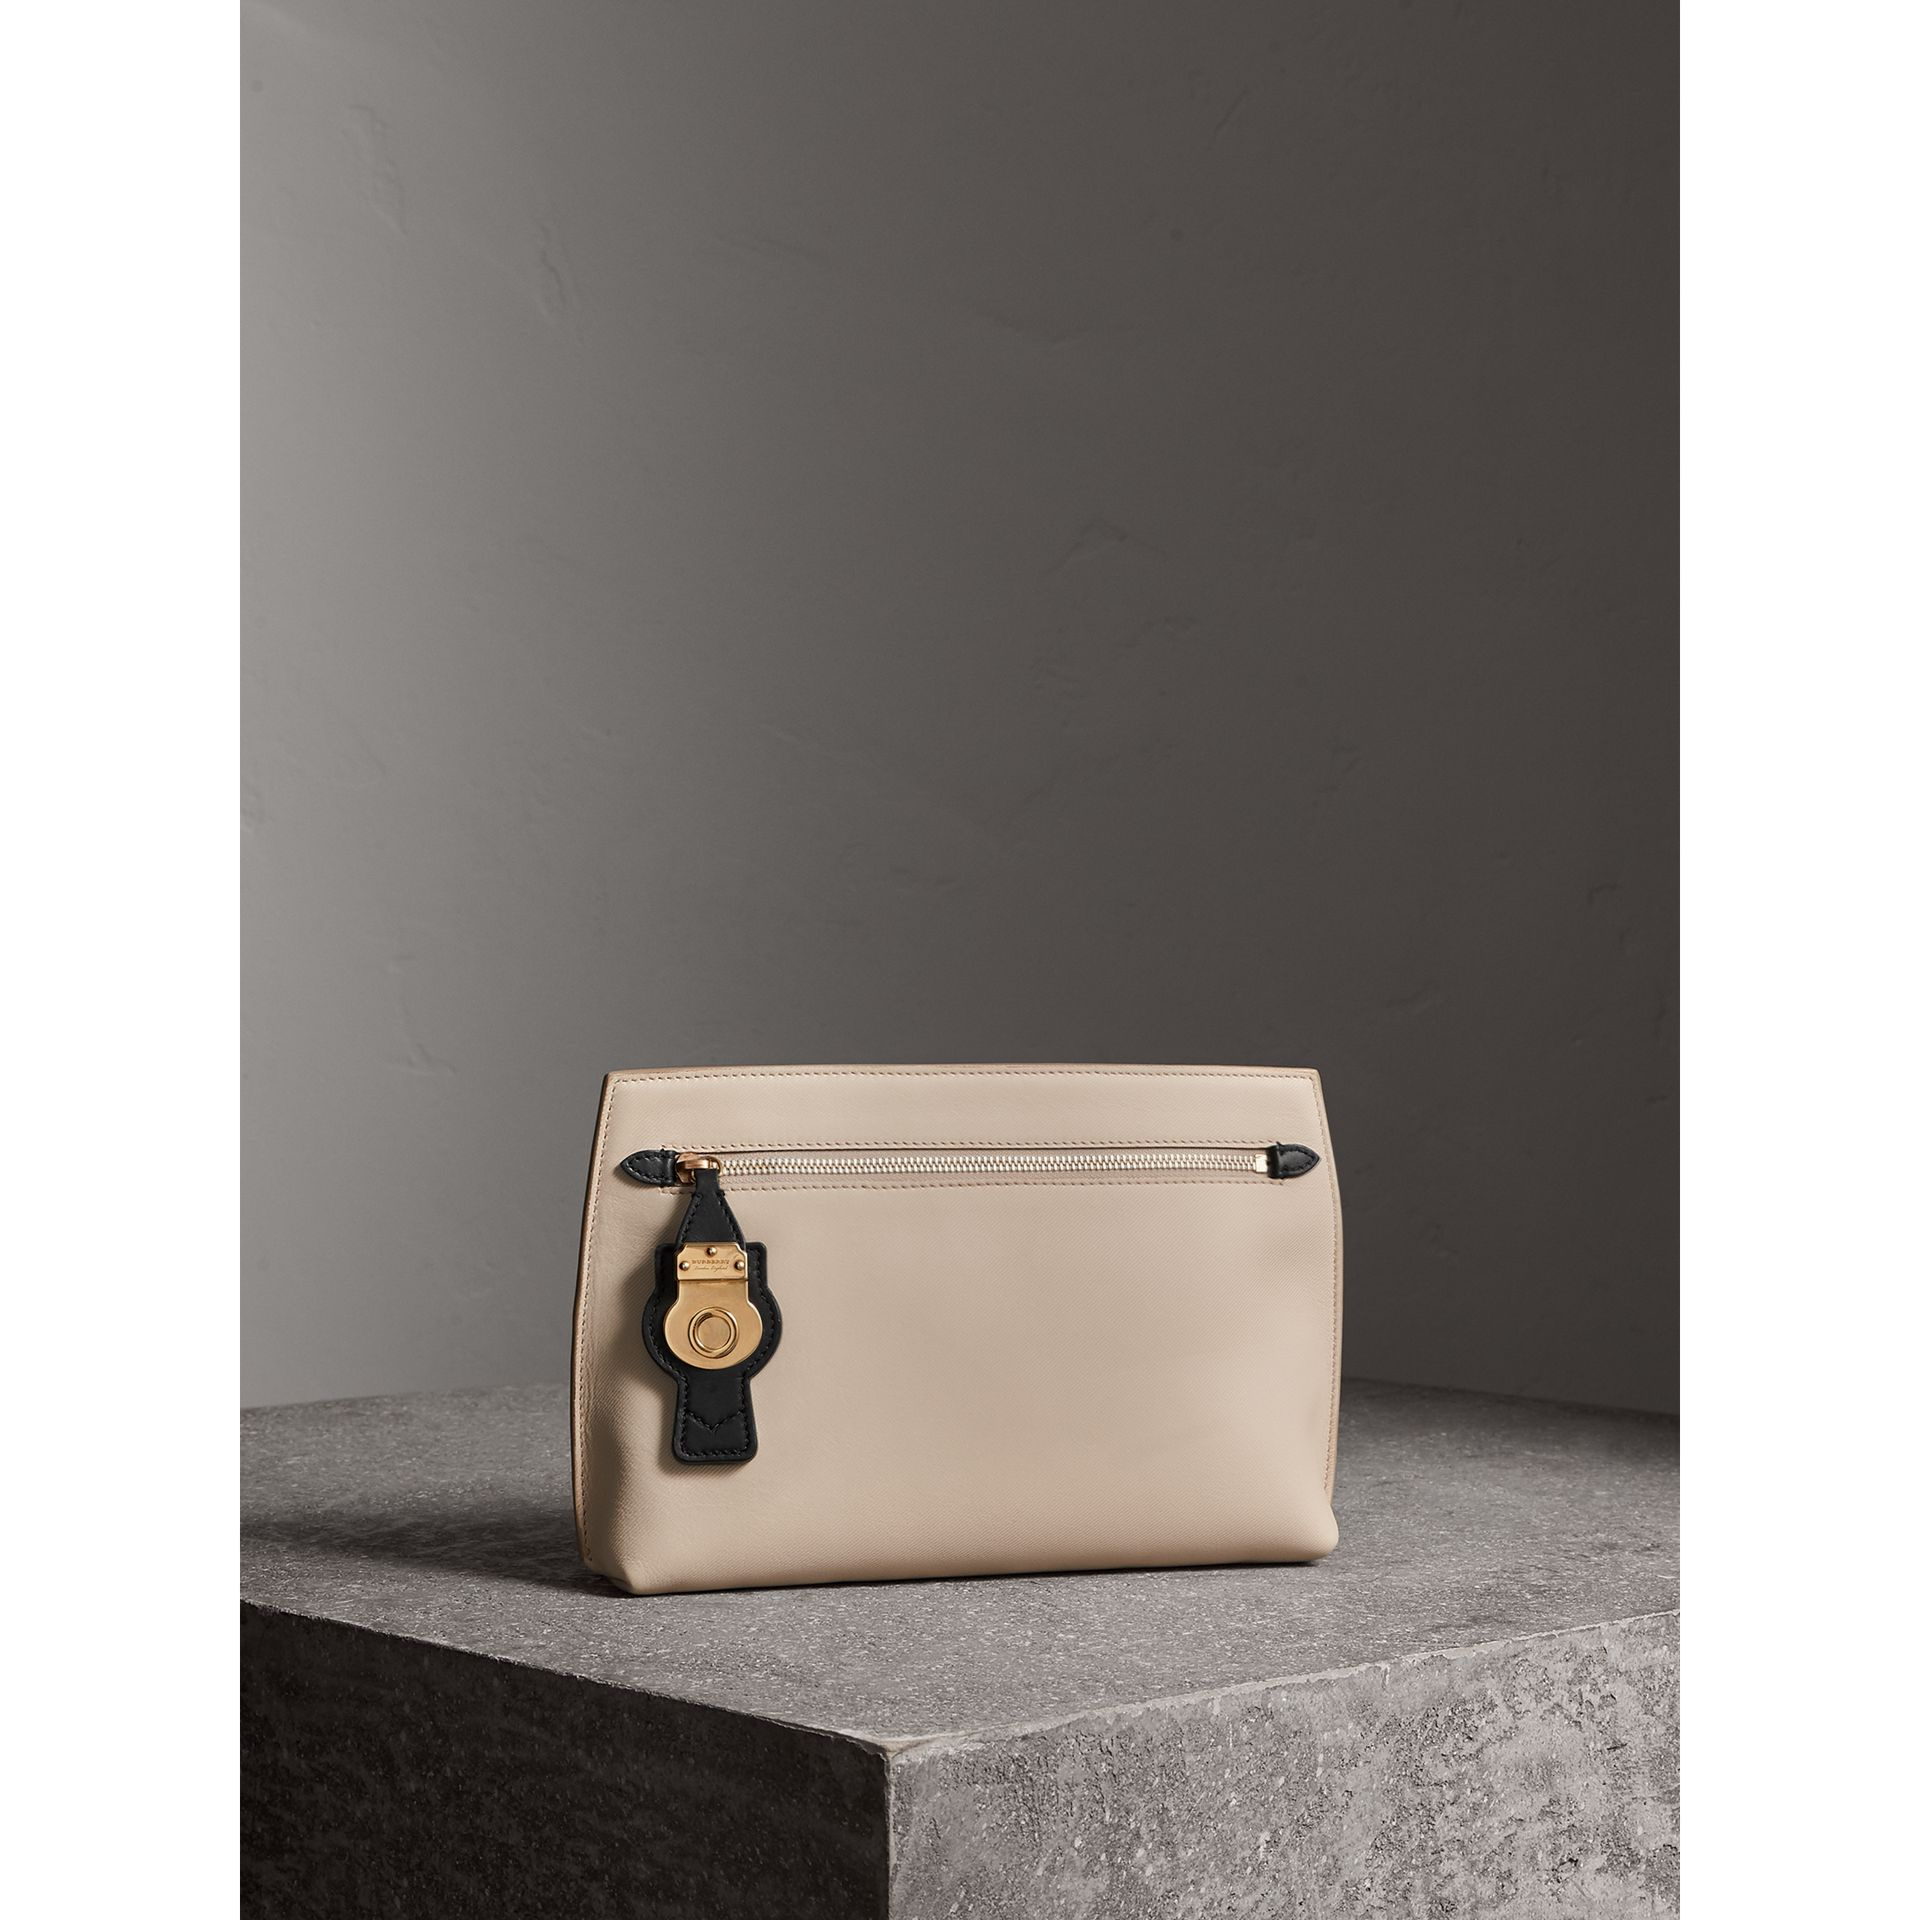 Two-tone Trench Leather Wristlet Pouch in Limestone/black - Women | Burberry Hong Kong - gallery image 6